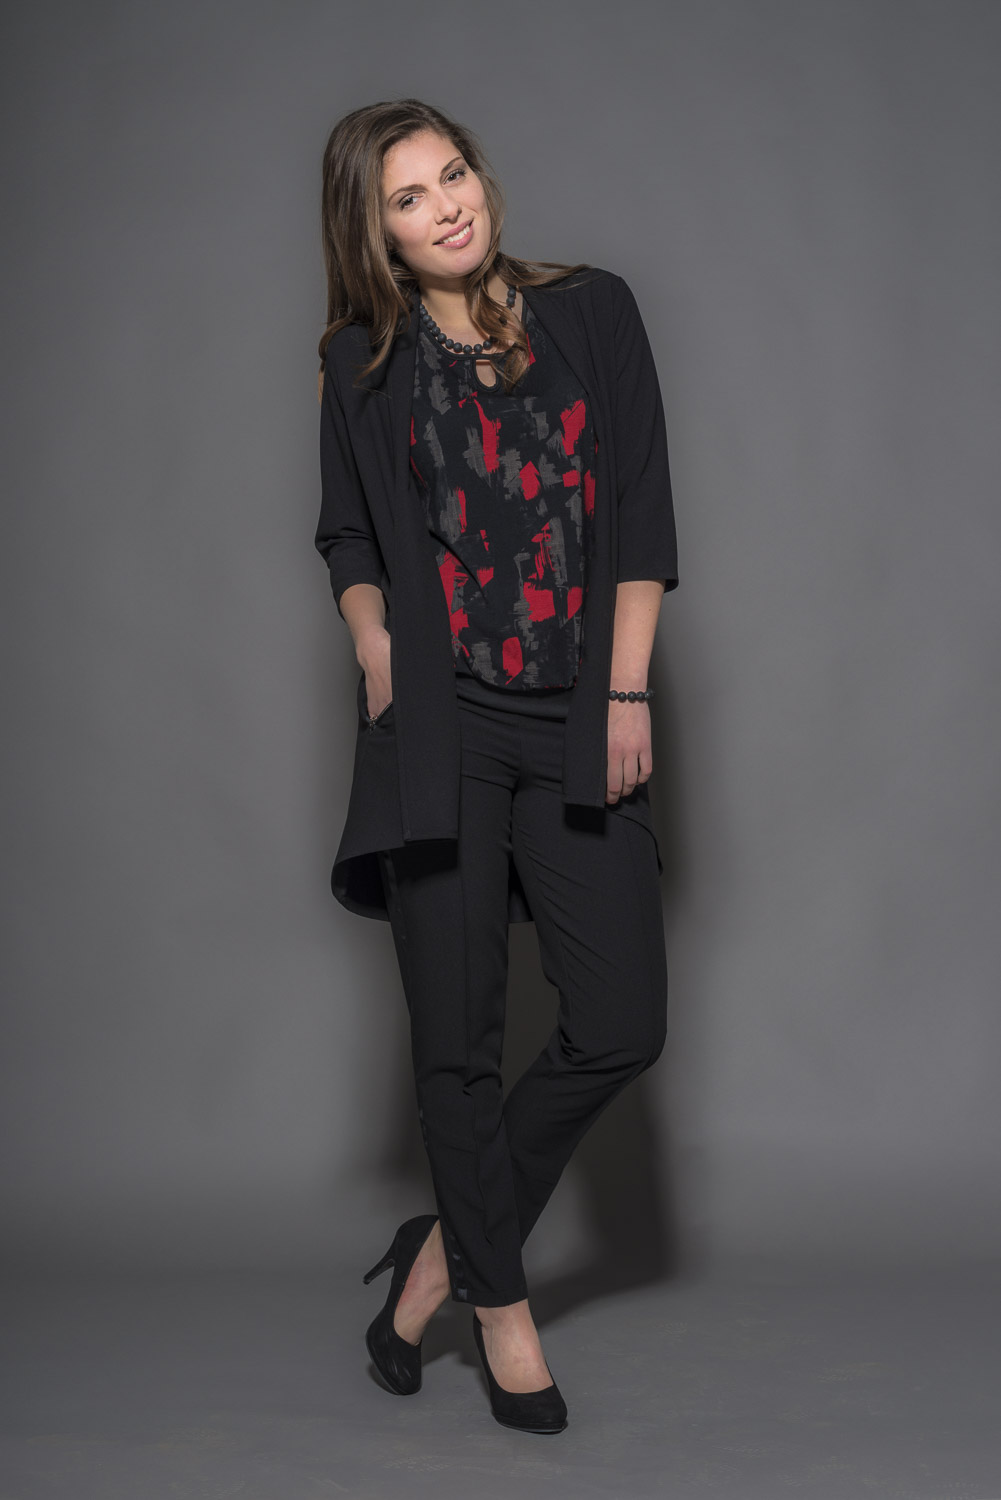 Cardigan C3265 – Blouse C4762 – Pants C5356